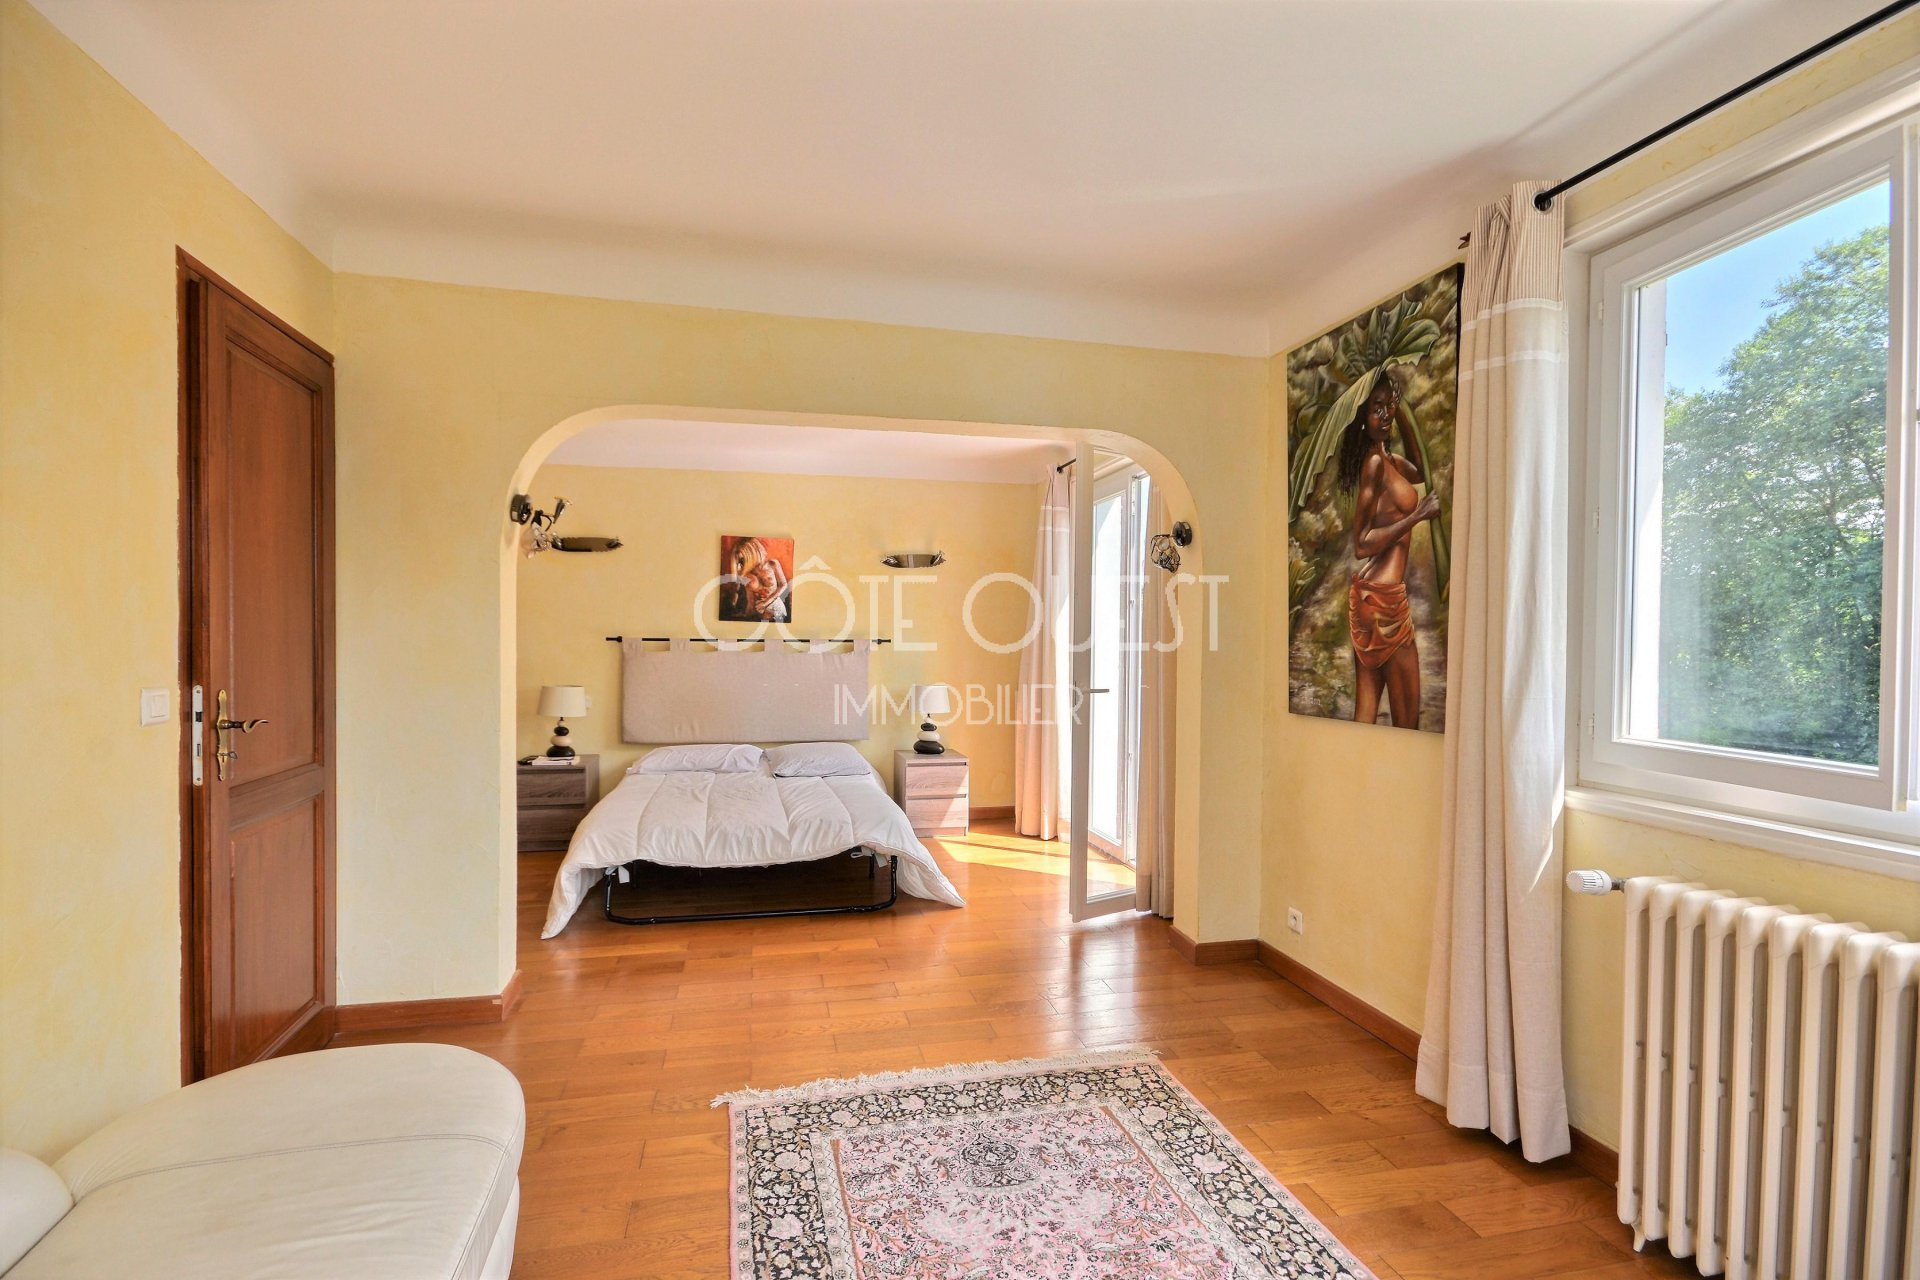 USTARITZ A BEAUTIFUL 11-ROOM PROPERTY WITH A SWIMMING POOL